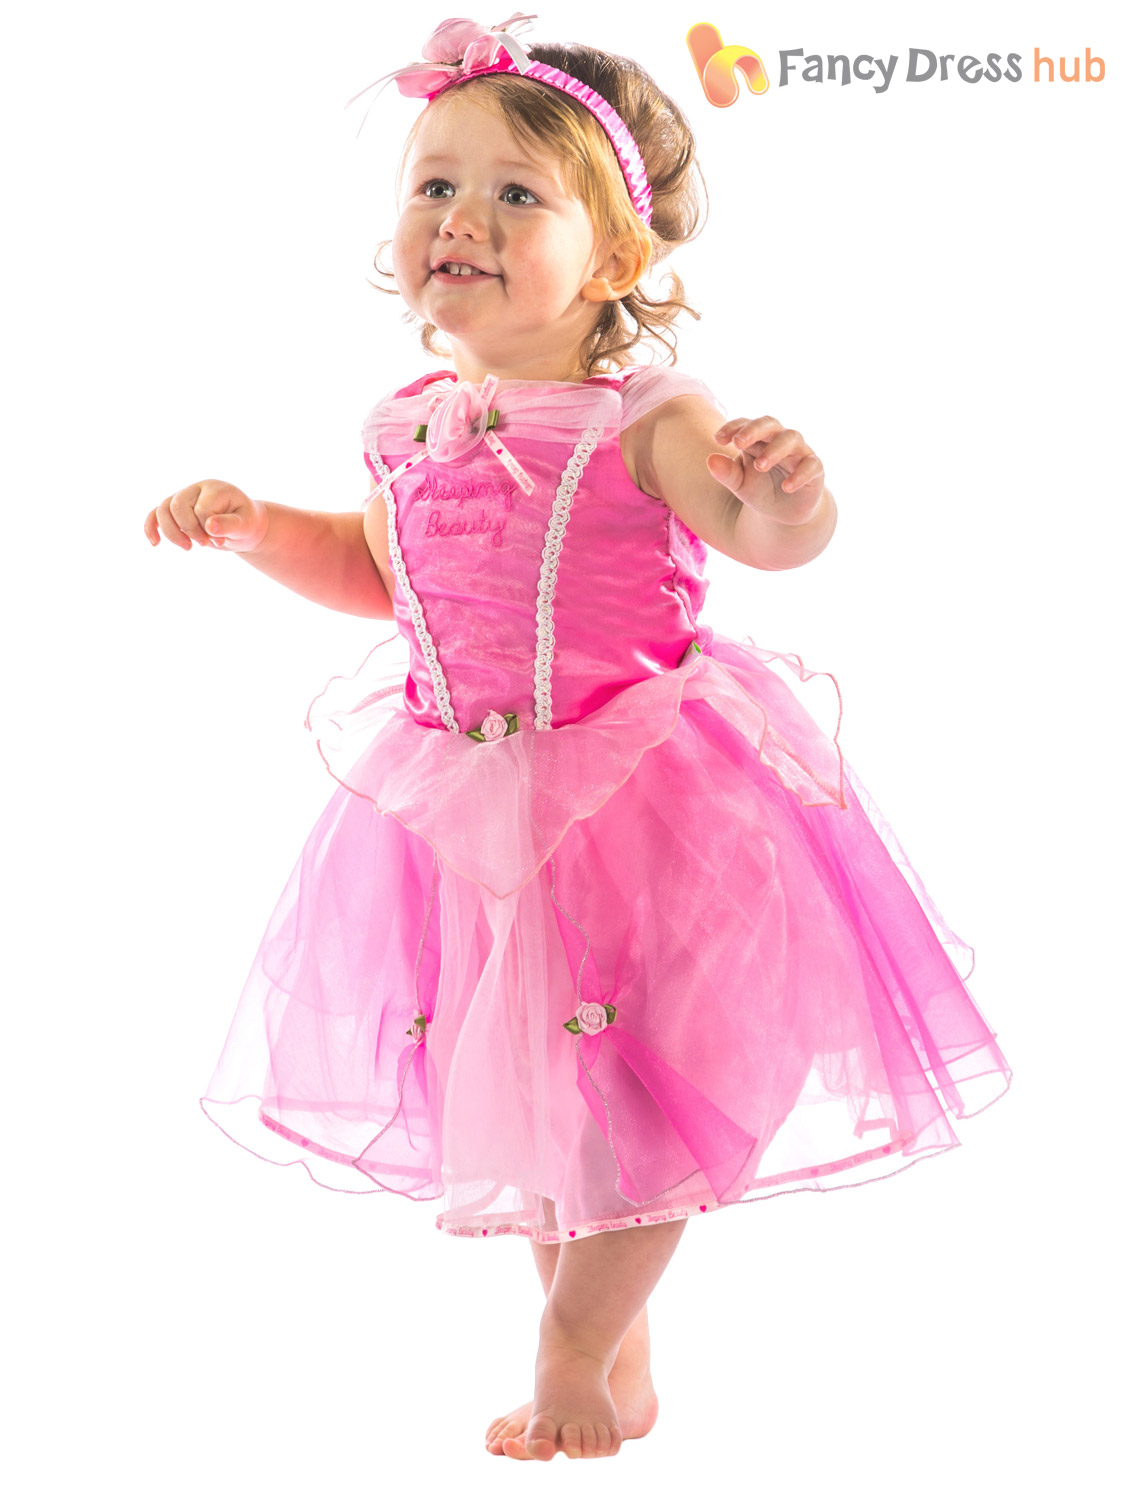 Toddler Princess Costumes. Showing 40 of results that match your query. Search Product Result. Product - Disney Princess Snow White Classic Toddler Halloween Costume. Product - In-Character Infant Girls Pretty Pixie Costume Baby Pink Fairy Princess. Product Image. Price $ 99 - $ Product Title.